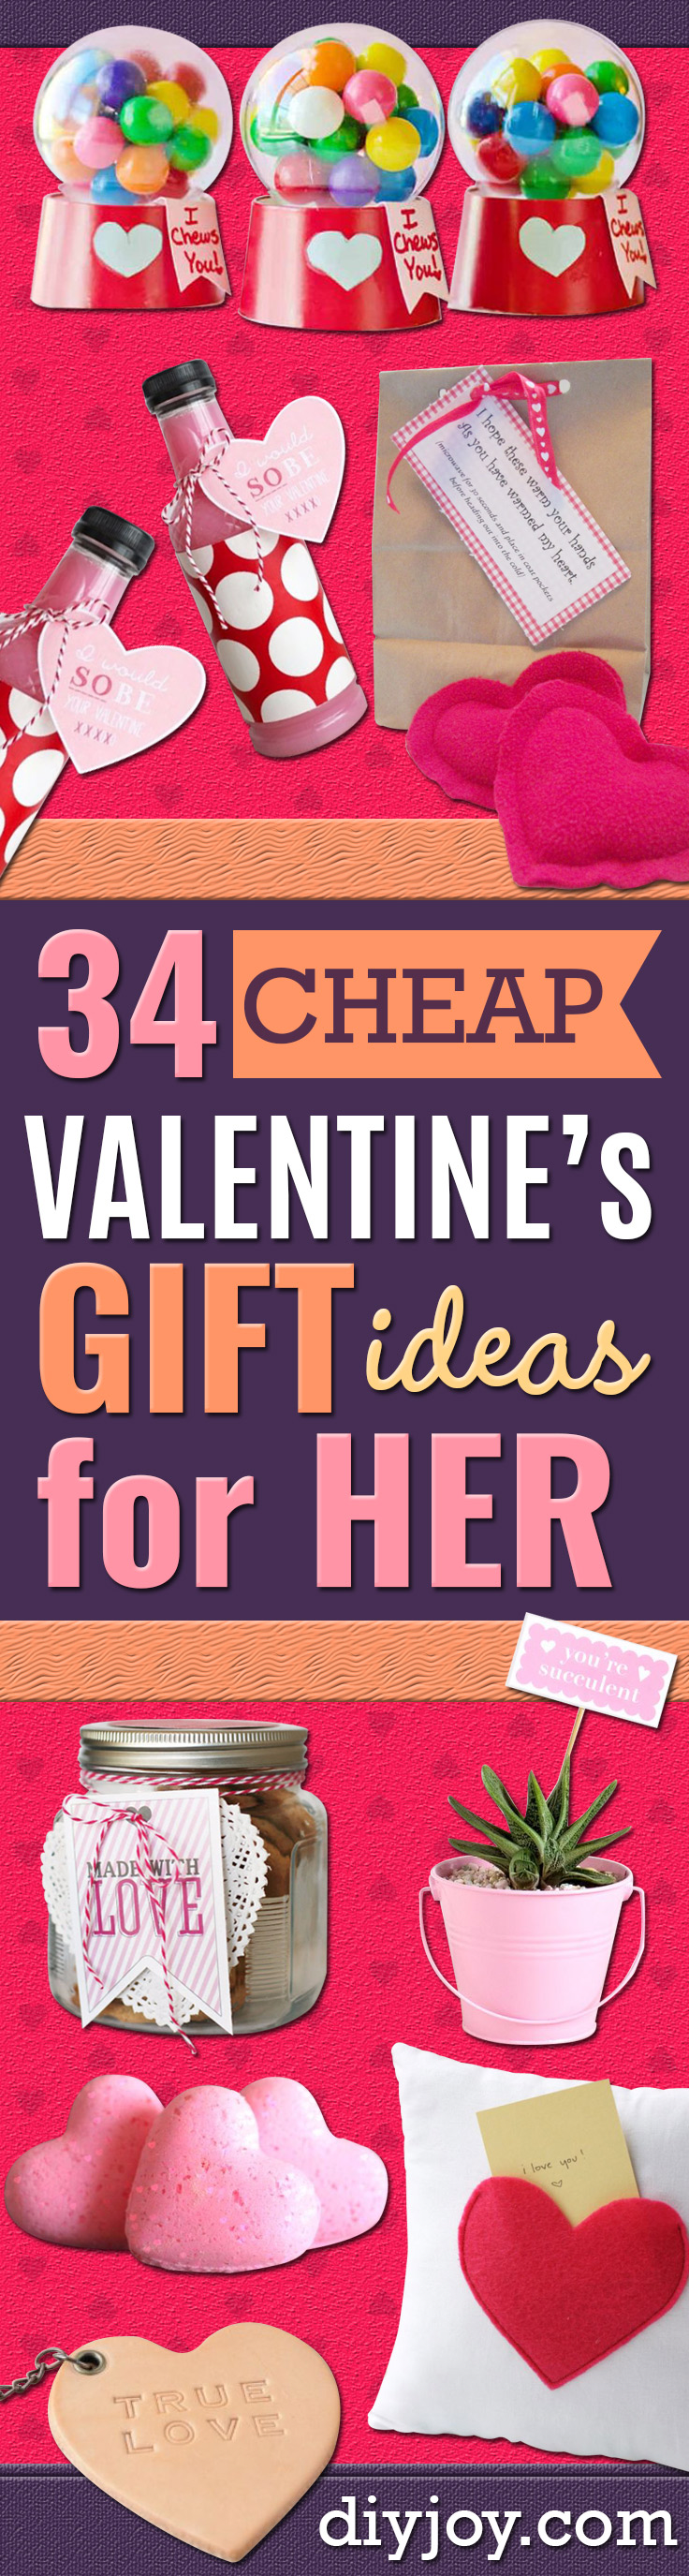 DIY Valentines Day Gifts for Her - Cool and Easy Things To Make for Your Wife, Girlfriend, Fiance - Creative and Cheap Do It Yourself Projects to Give Your Girl - Ladies Love These Ideas for Bath, Yard, Home and Kitchen, Outdoors - Make, Don't Buy Your Valentine http://diyjoy.com/diy-valentines-gifts-her